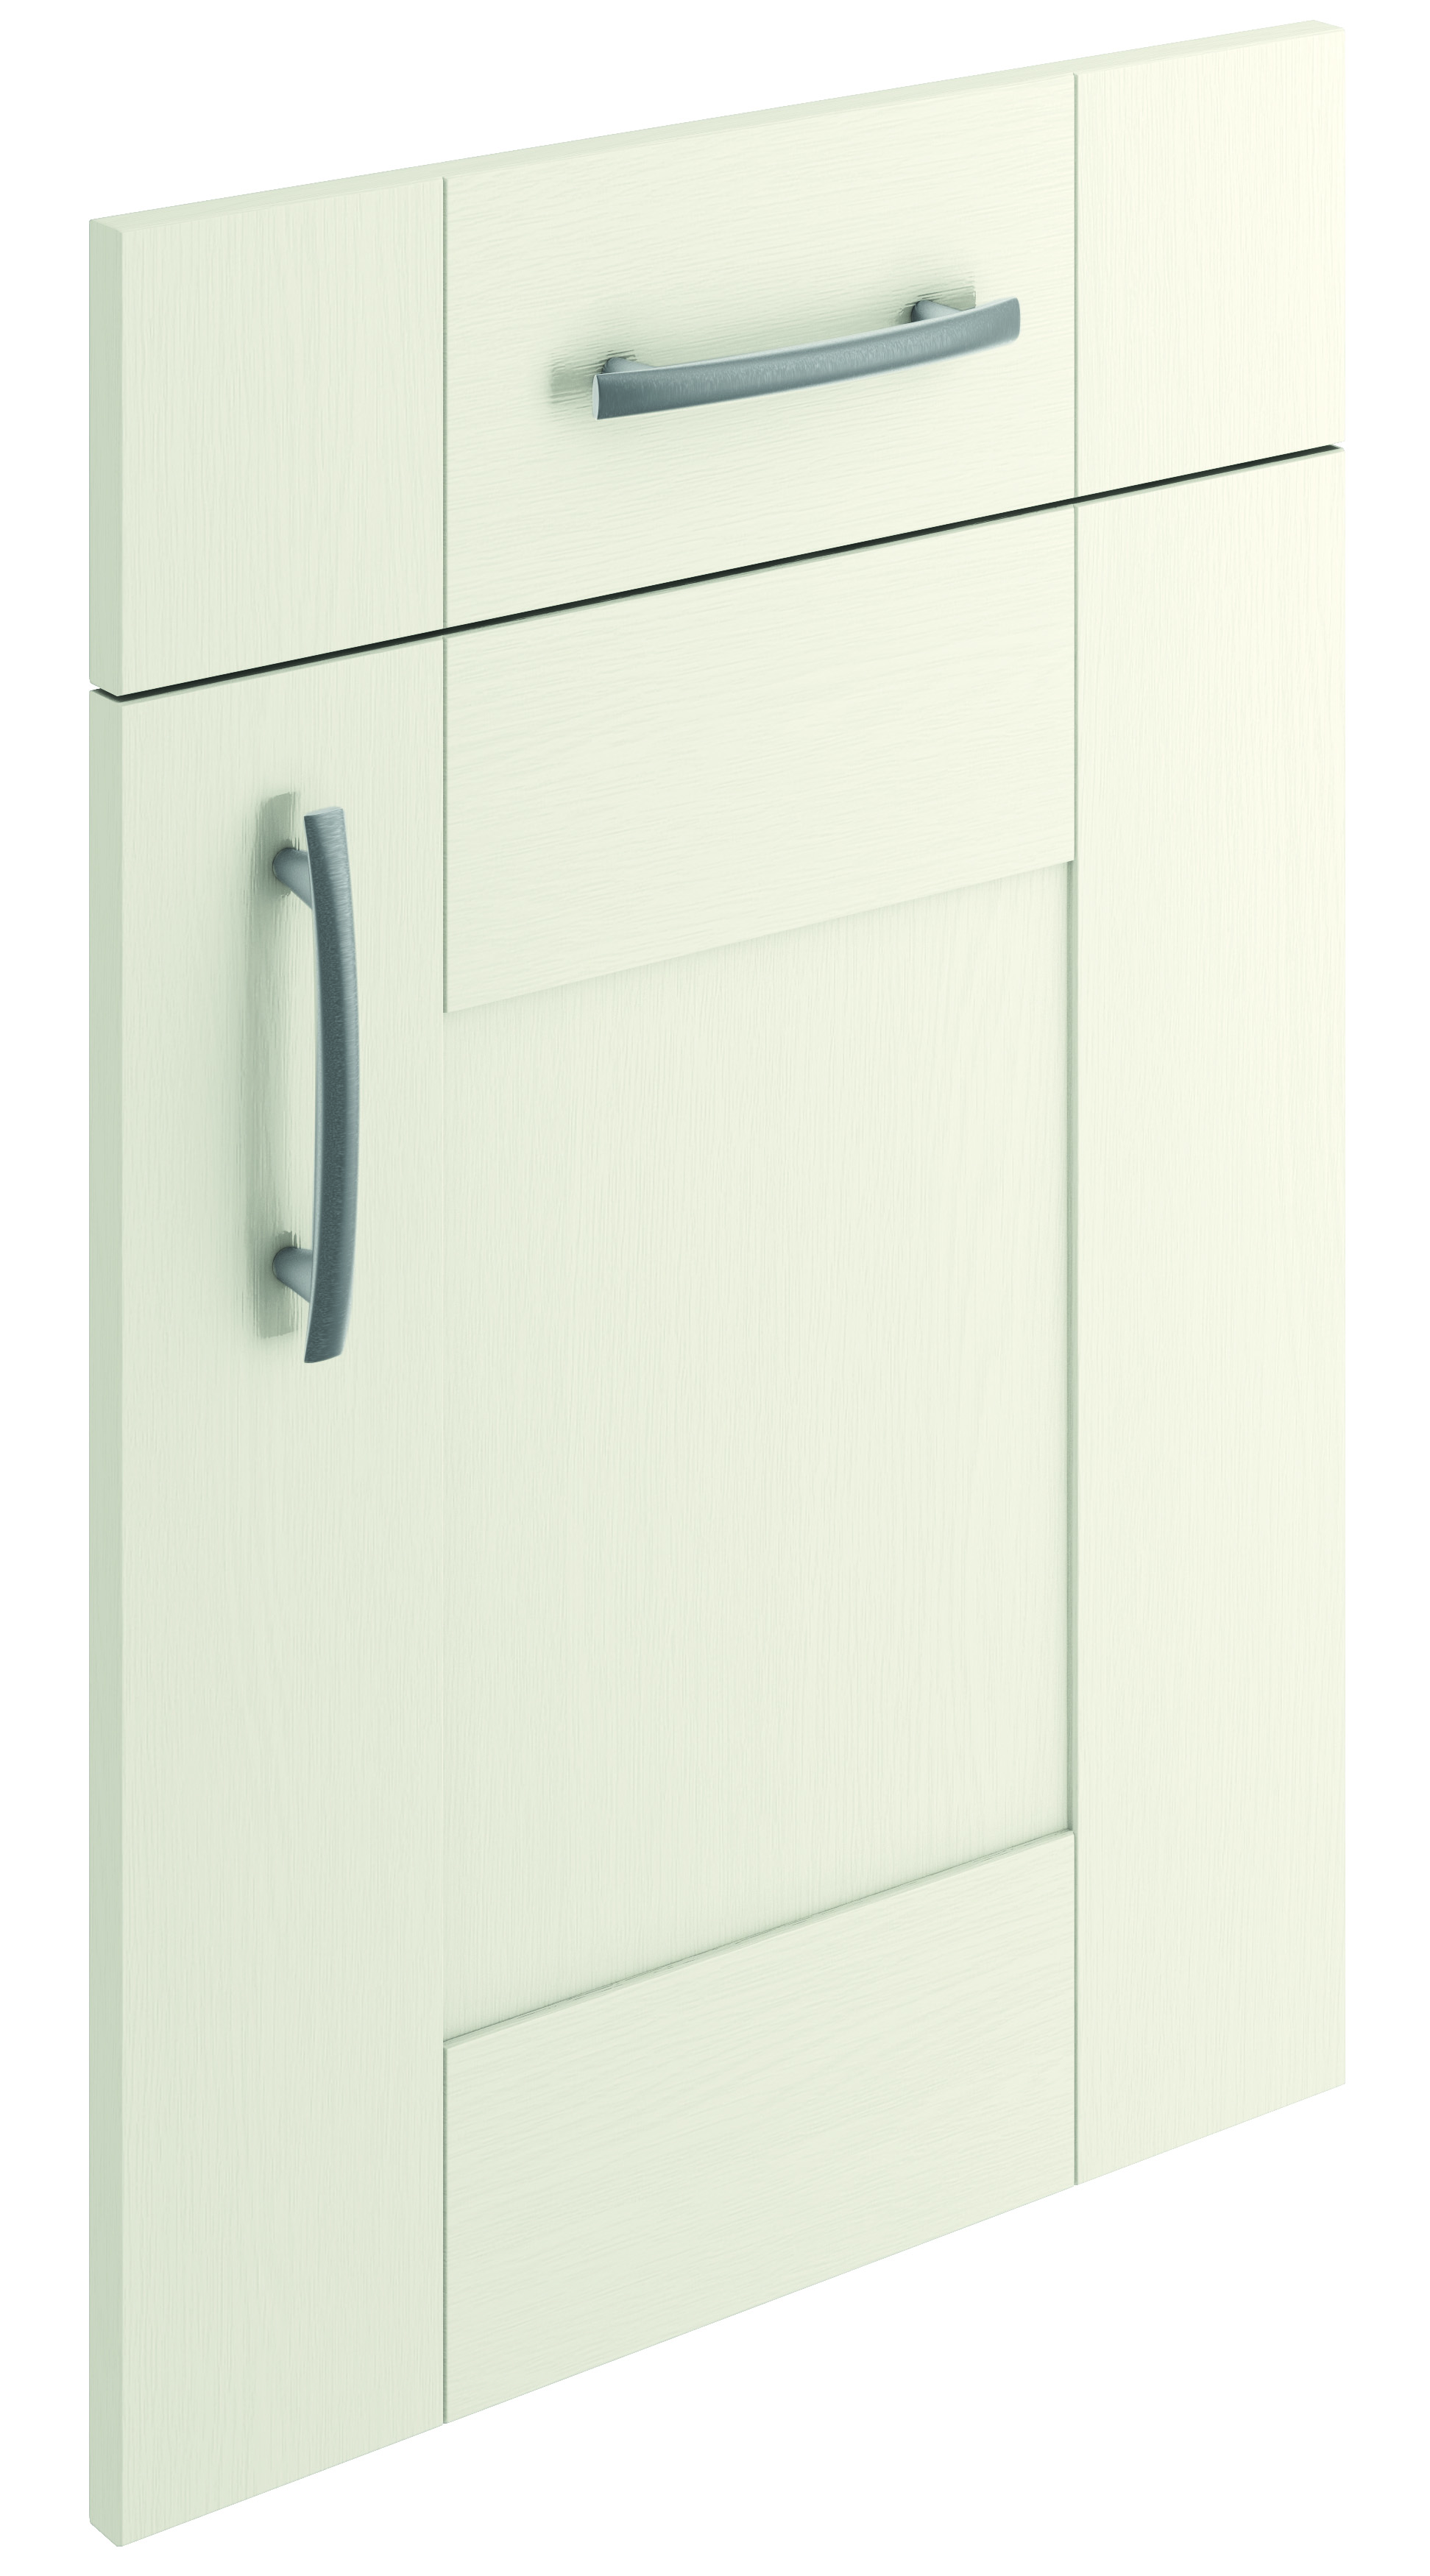 Mirano Cartmel Kitchen Painted Traditional Classic Timber Oak Matte White Tongue Groove Shaker Door